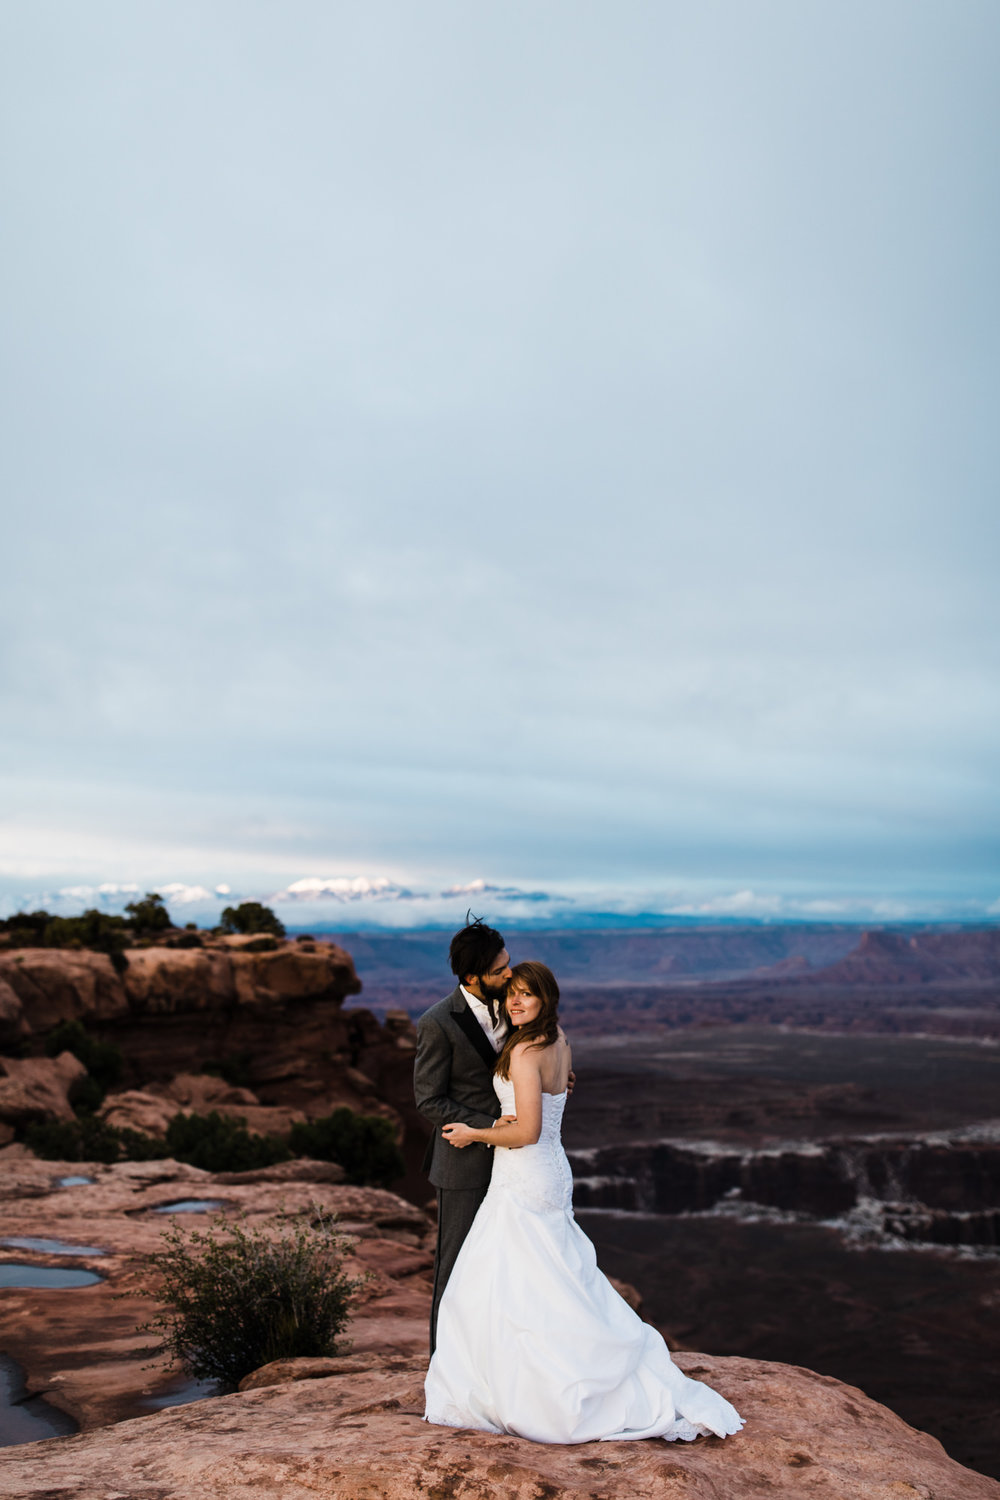 elopement in canyonlands national park | destination adventure wedding photographers | the hearnes adventure photography | www.thehearnes.com